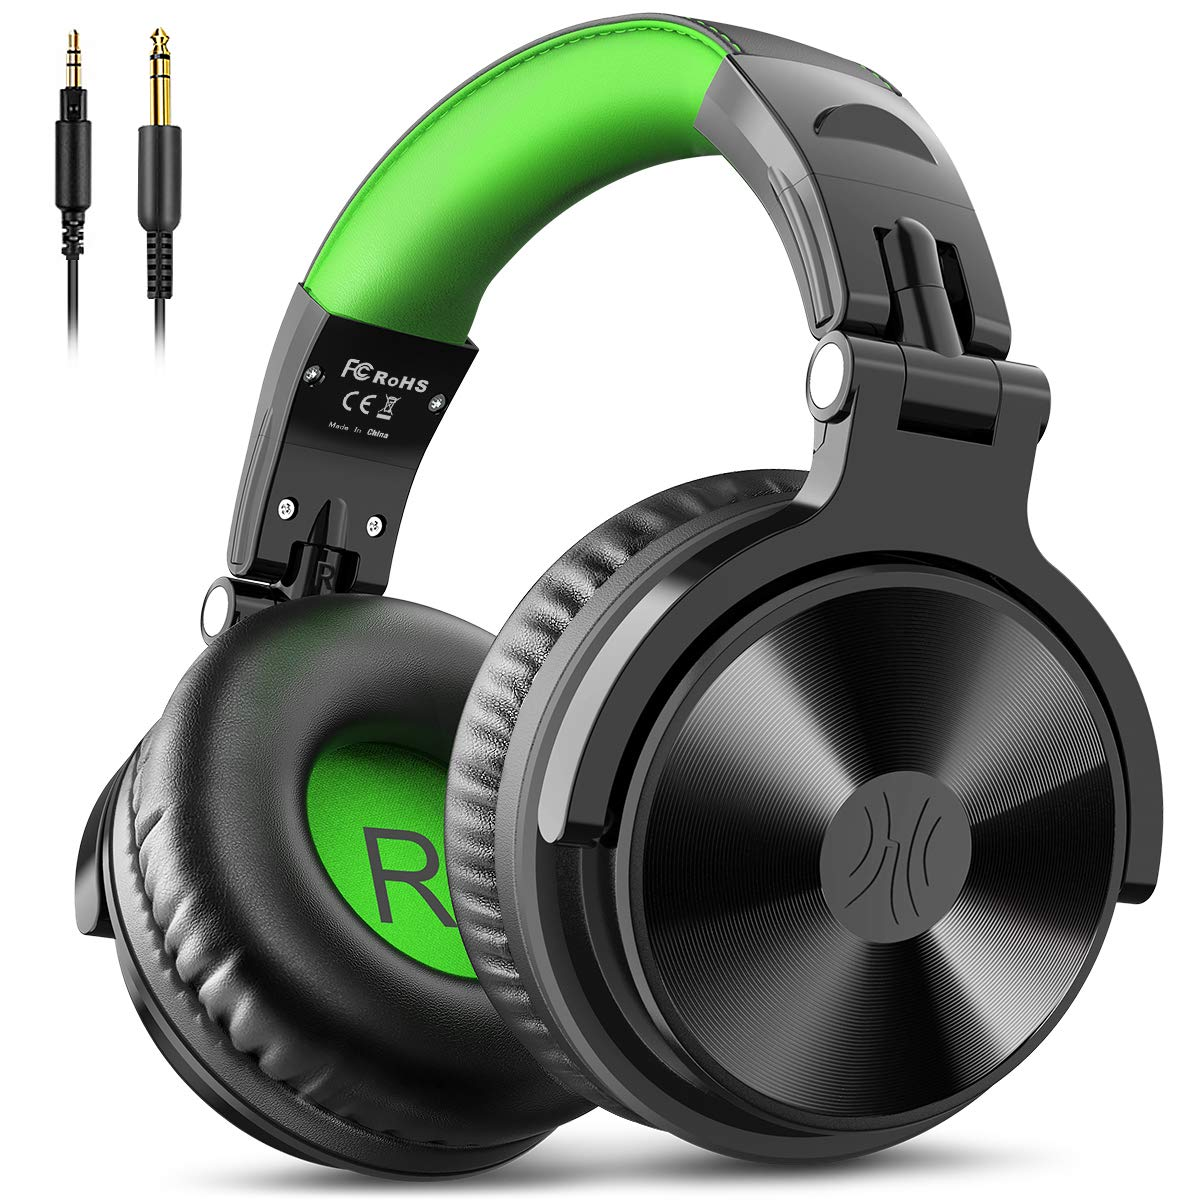 Amazon Com Oneodio Gaming Headsets With Boom Mic Over Ear Dj Headphones Wired Stereo Sound For Recording Gaming Chatting 50mm Driver Share Port Soft Earmuffs For Guitar Amp Ps4 Xbox Cell Phone Pc